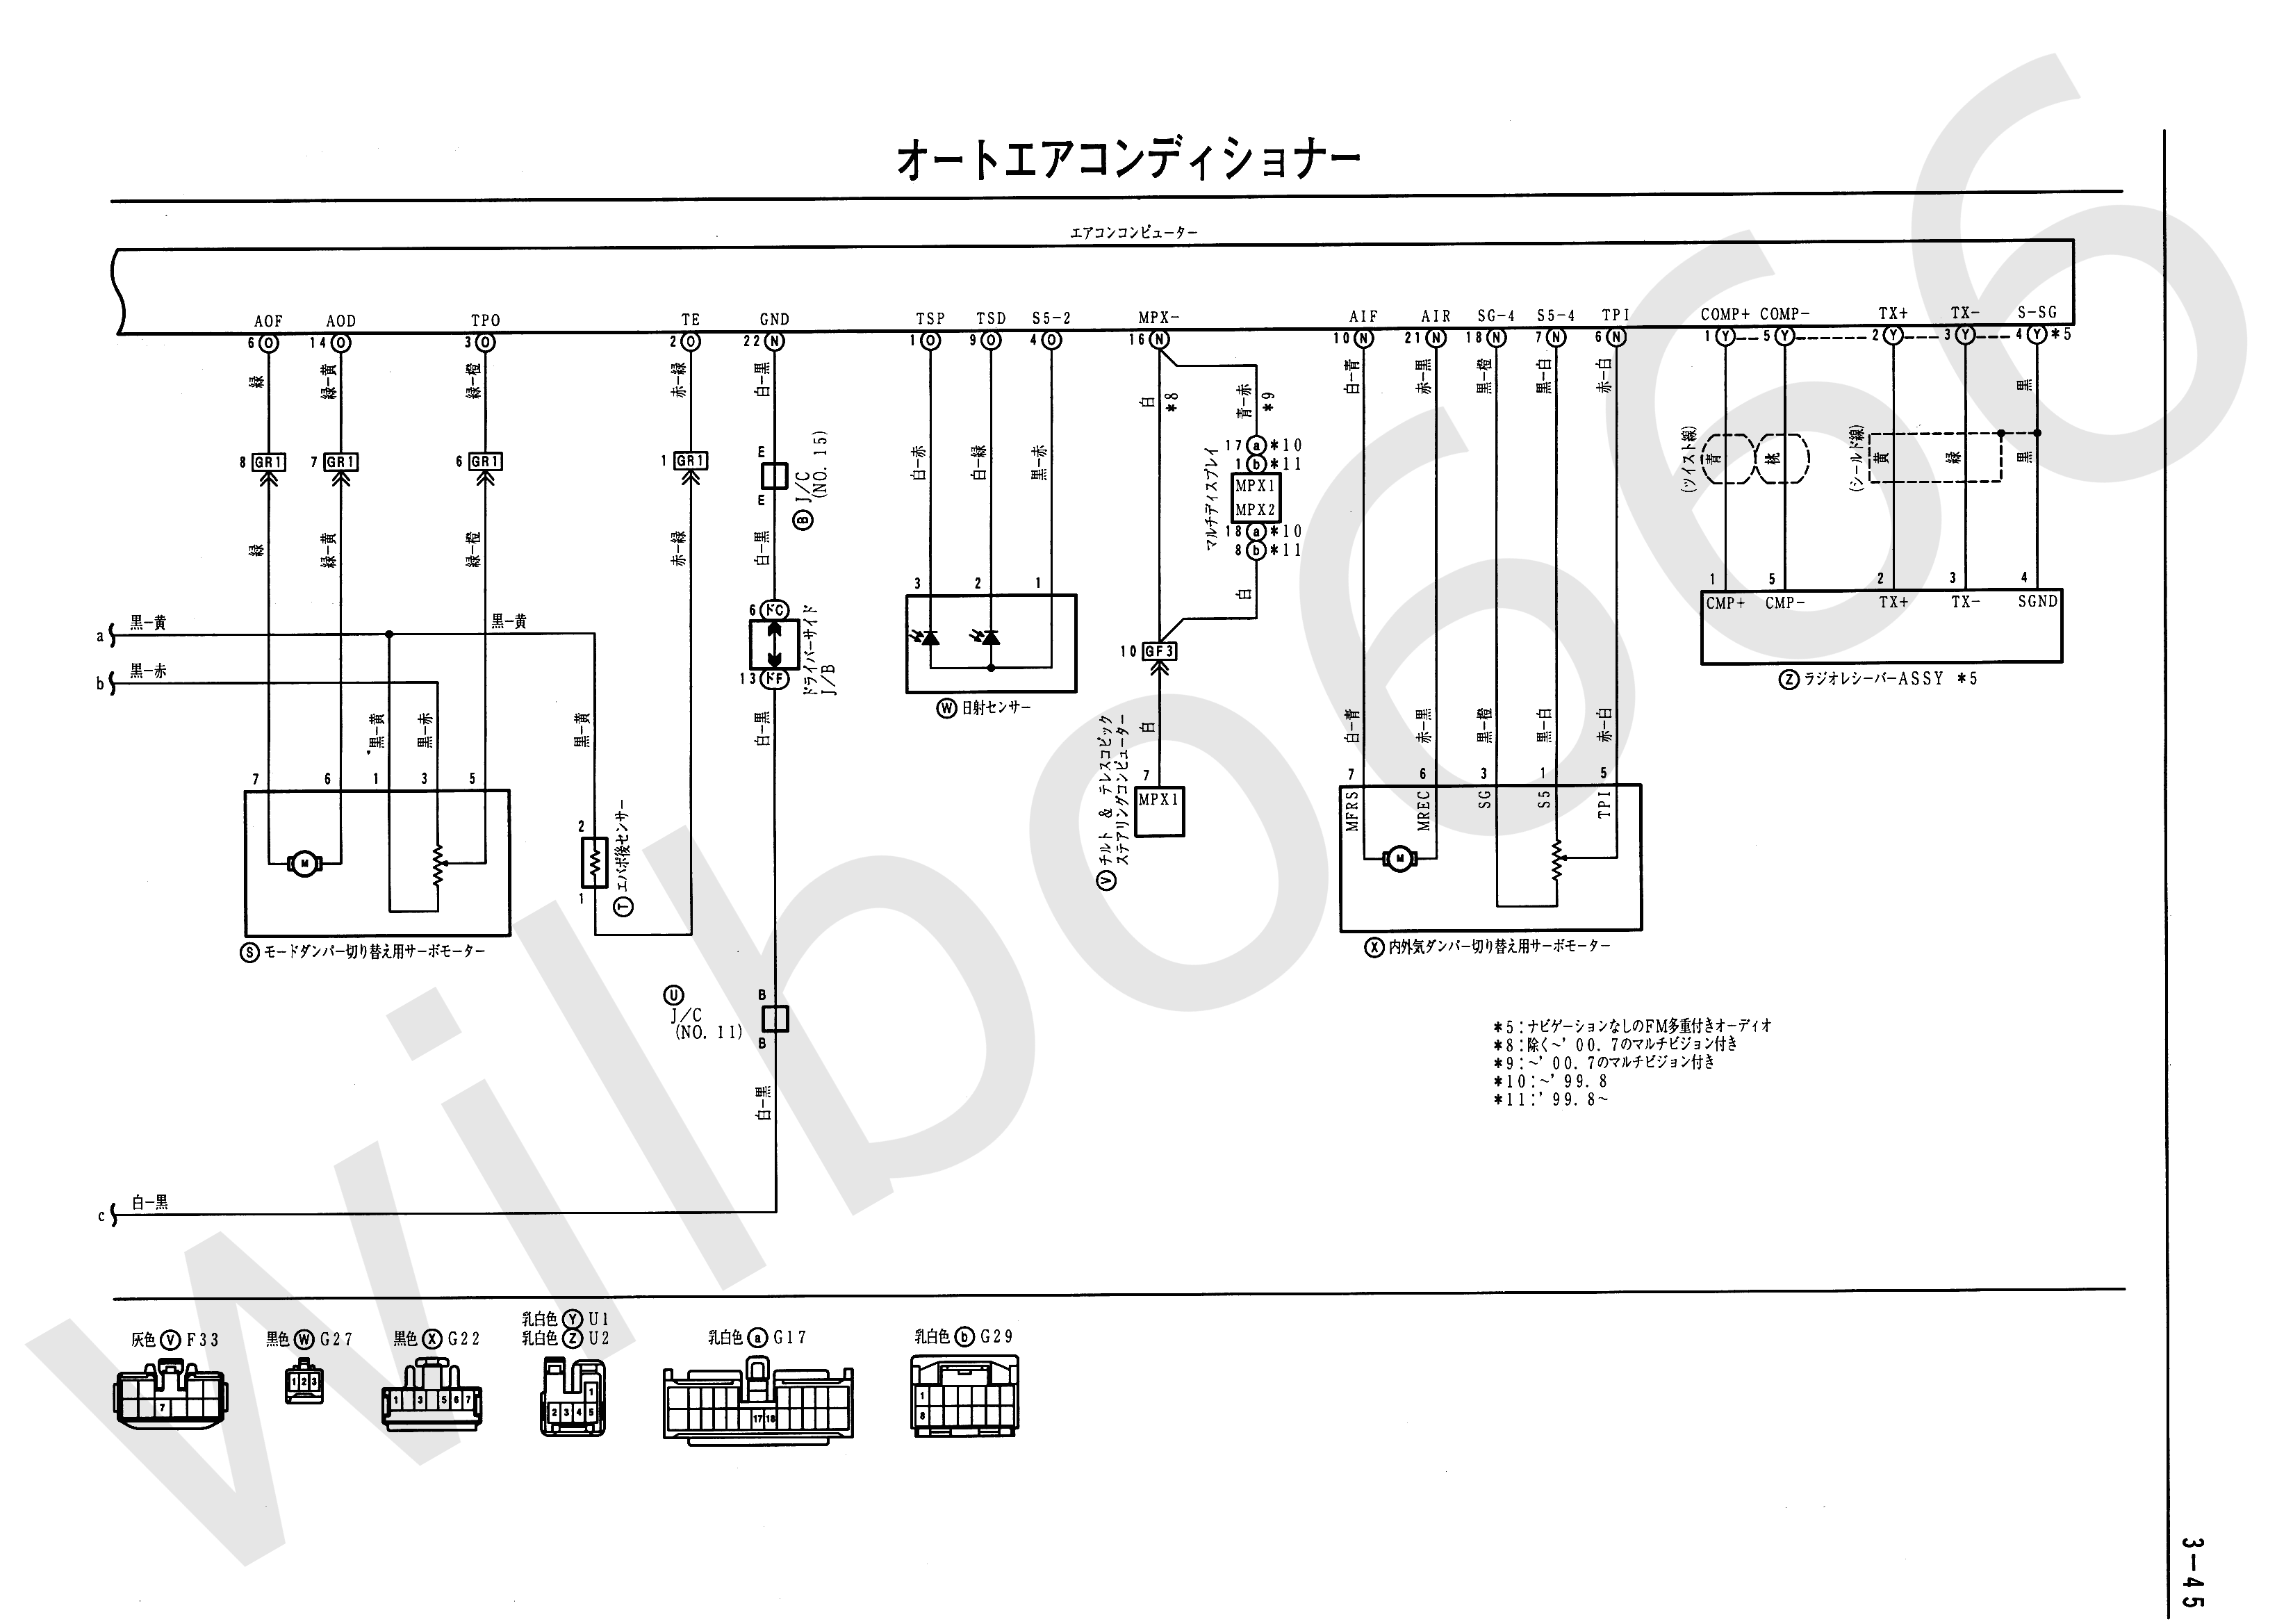 JZS161 Electrical Wiring Diagram 6748505 3 45?resize\\=3300%2C2337 rough house 50cc scooter wiring diagram kymco scooter parts gy6 50cc wiring diagram at gsmportal.co